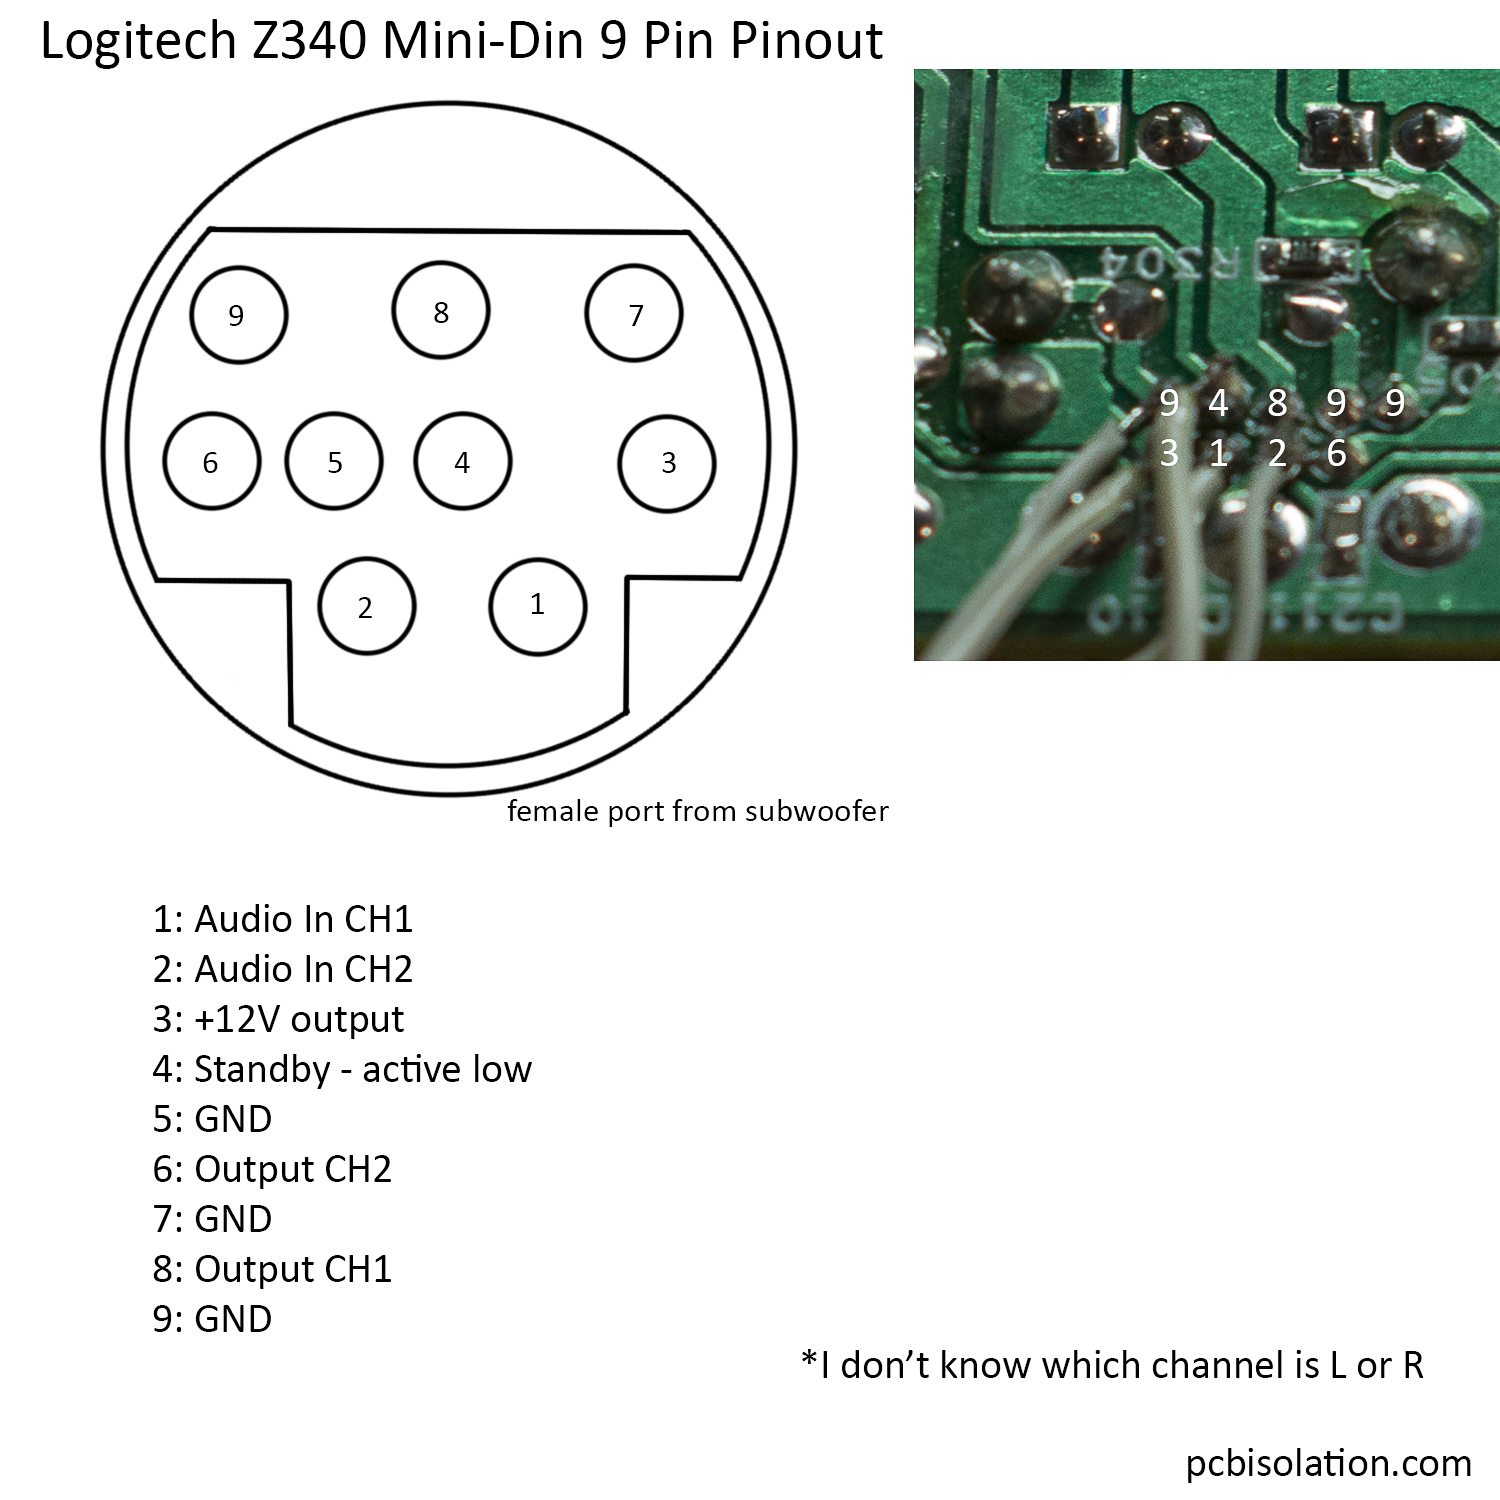 Logitech z340 21 pinout and reuse pcb isolation logitech z340 mini din pinout swarovskicordoba Choice Image